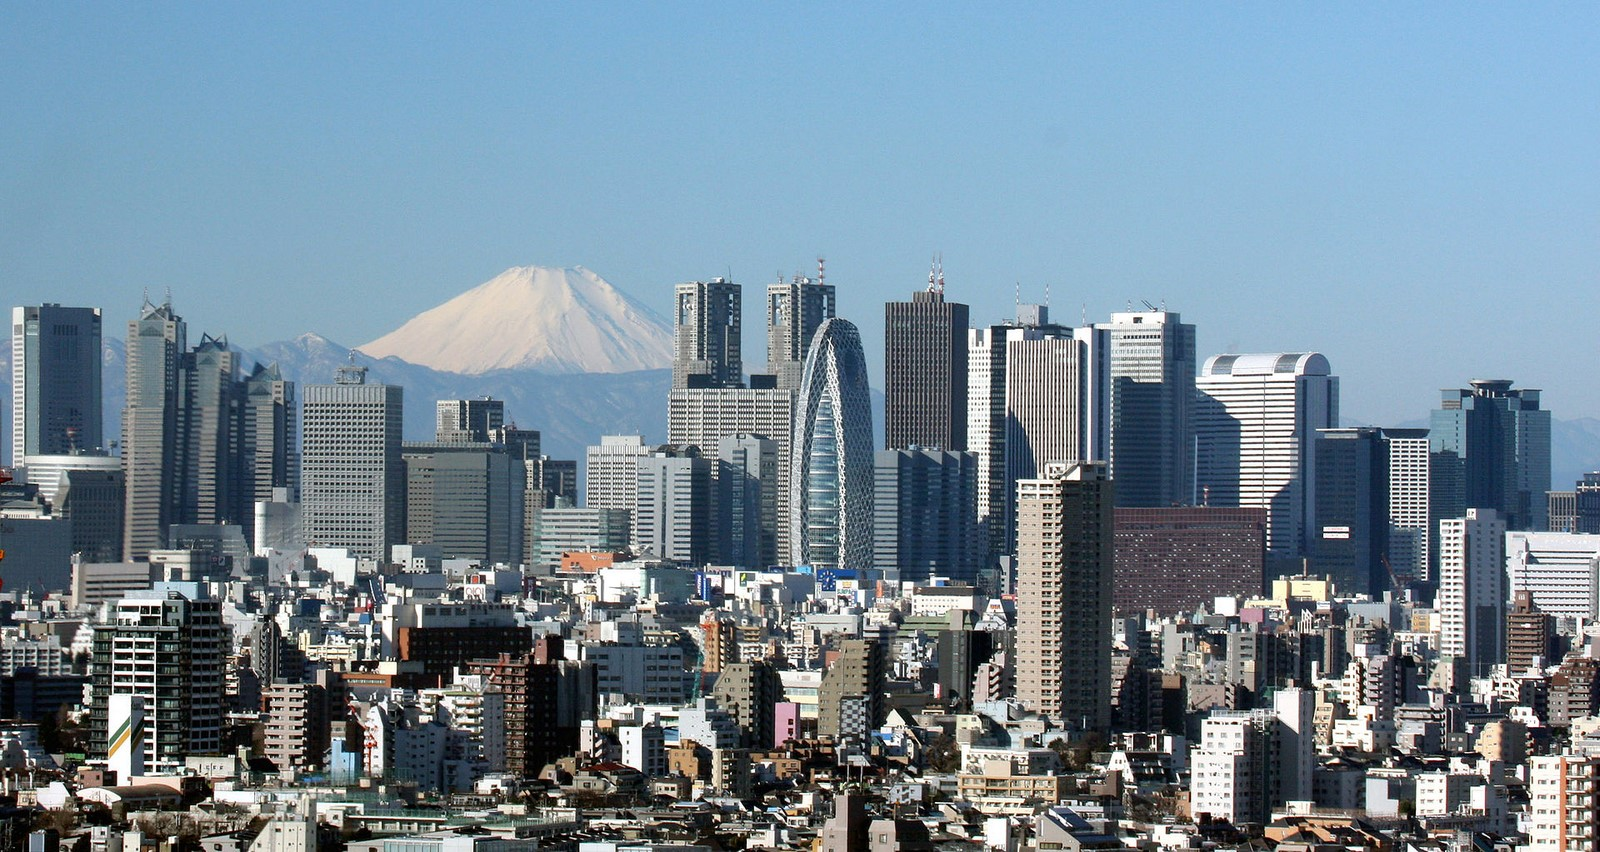 Architecture of Cities: Tokyo: Largest metropolitan in the world - Sheet1